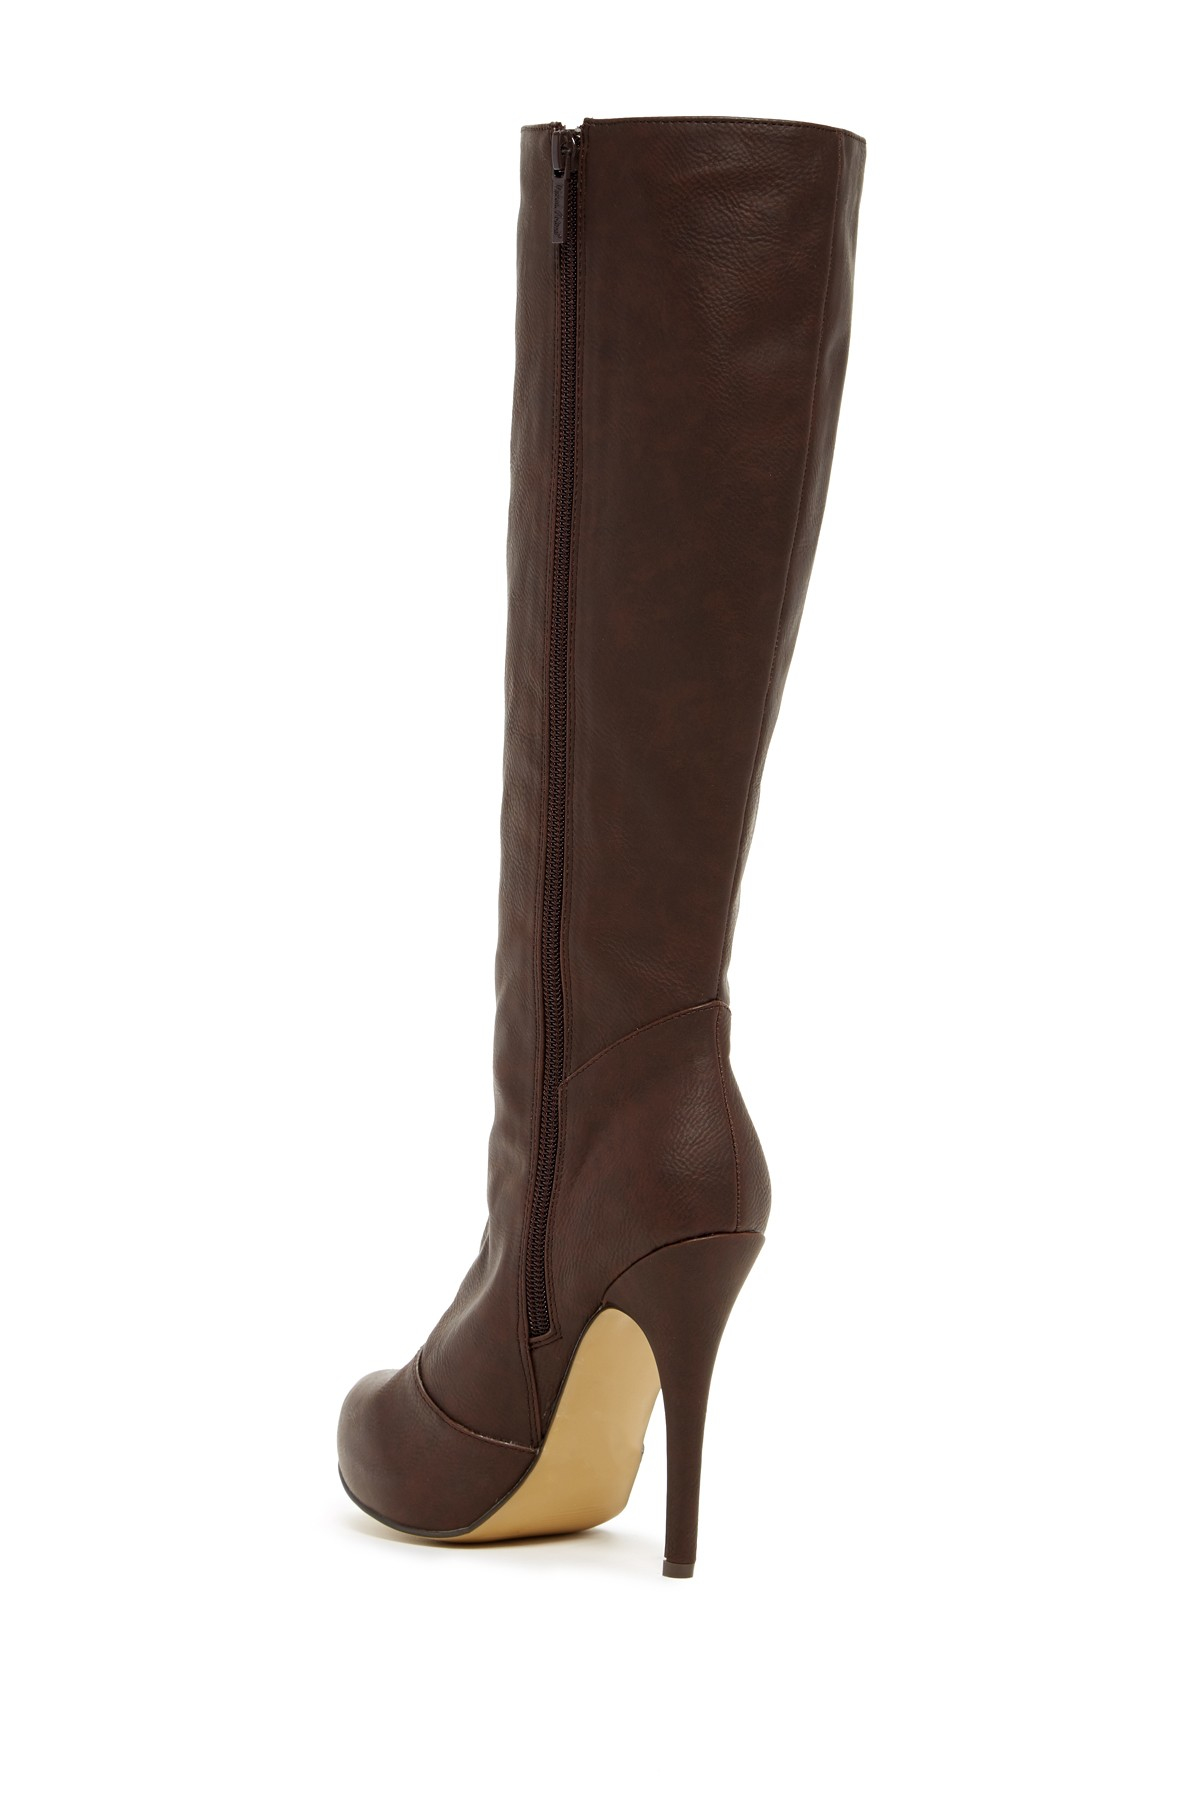 michael antonio bickie knee high boot in brown chocolate